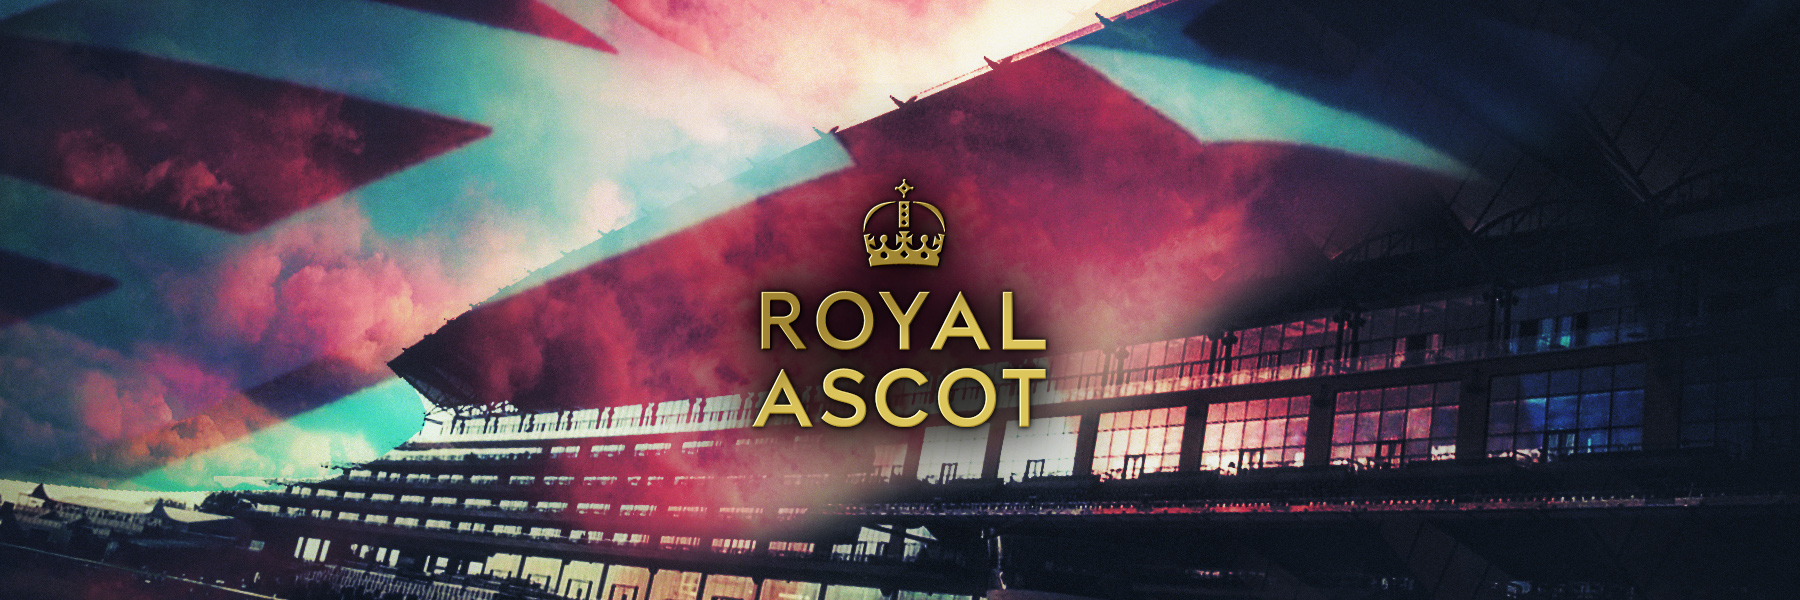 Musings From My Grade 1 Couch: Royal Ascot Analysis for June 20th, 2020